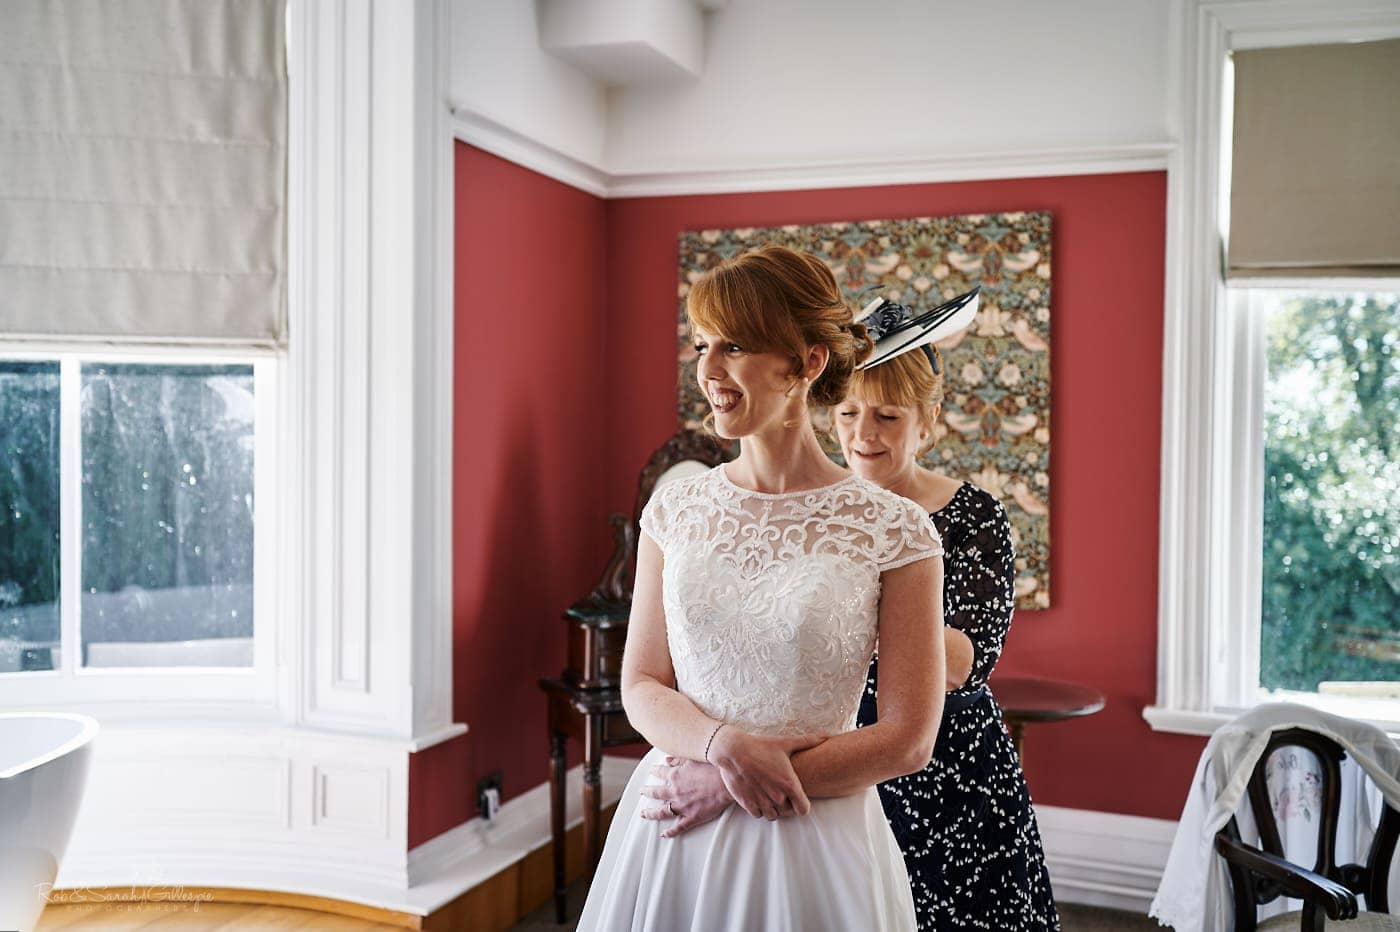 Bride's mum helps her into wedding dress in Strawberry Thief room at Pendrell Hall